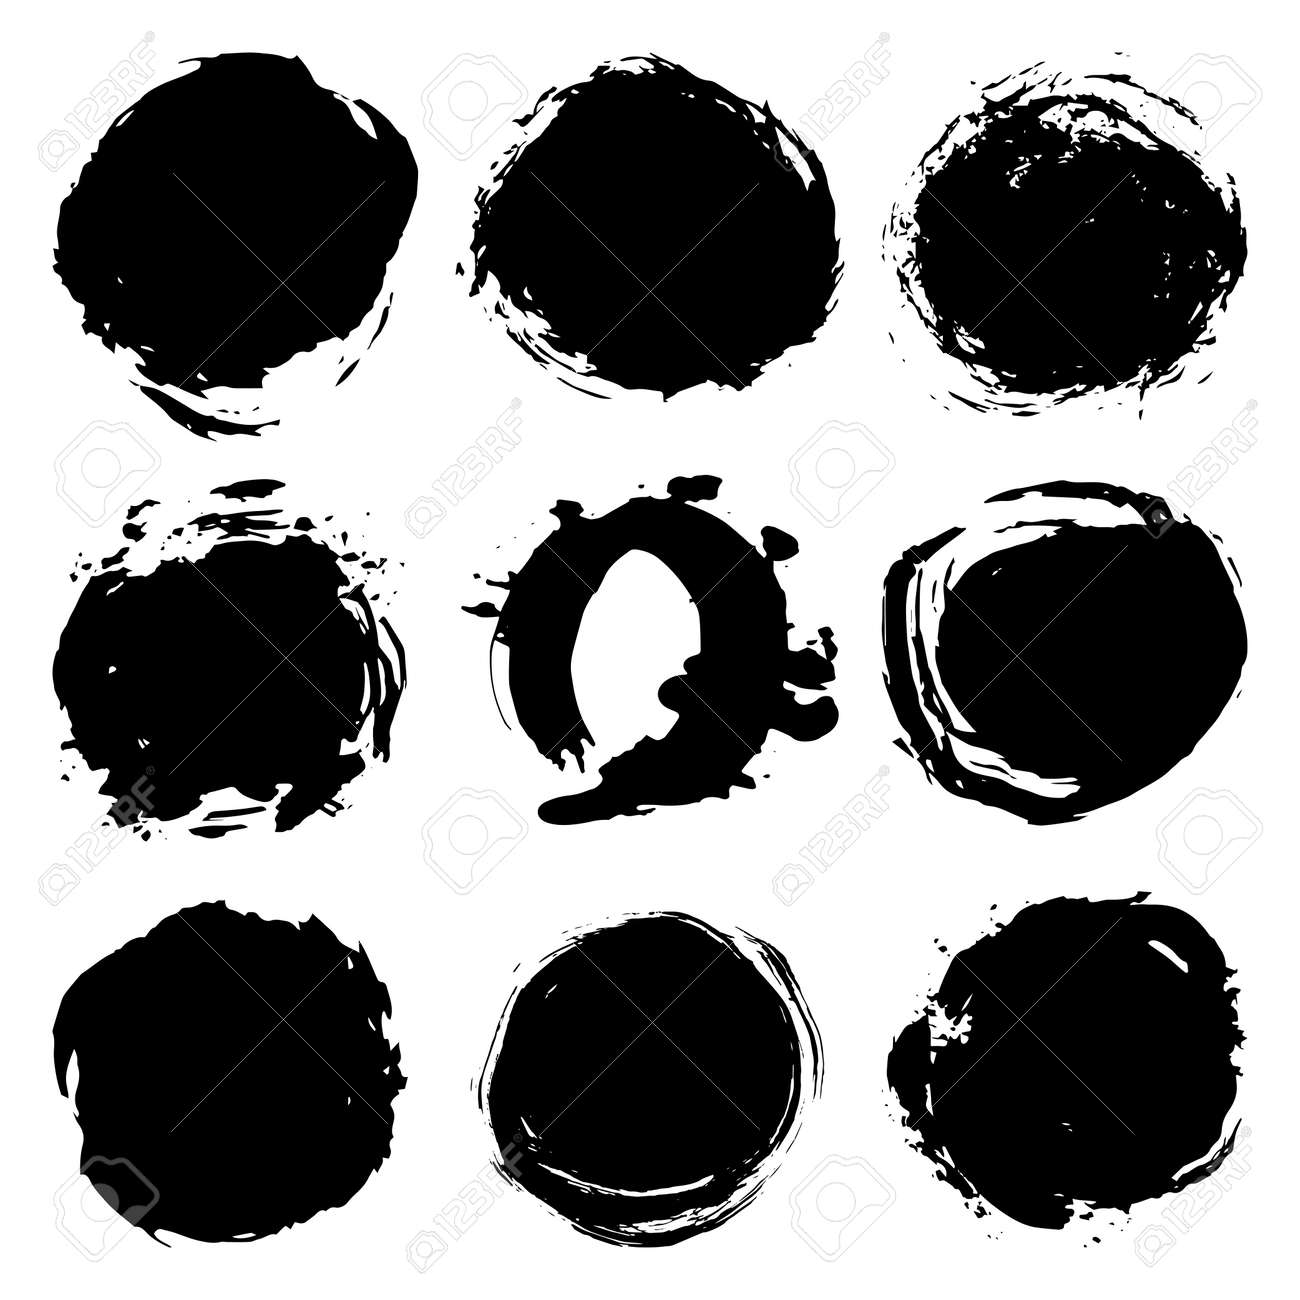 Black brush strokes round spot, collection abstract scandinavian style isolated on white background grunge texture. Card design elements paint stain template frame for your text, copy space. Vector illustration - 166872285